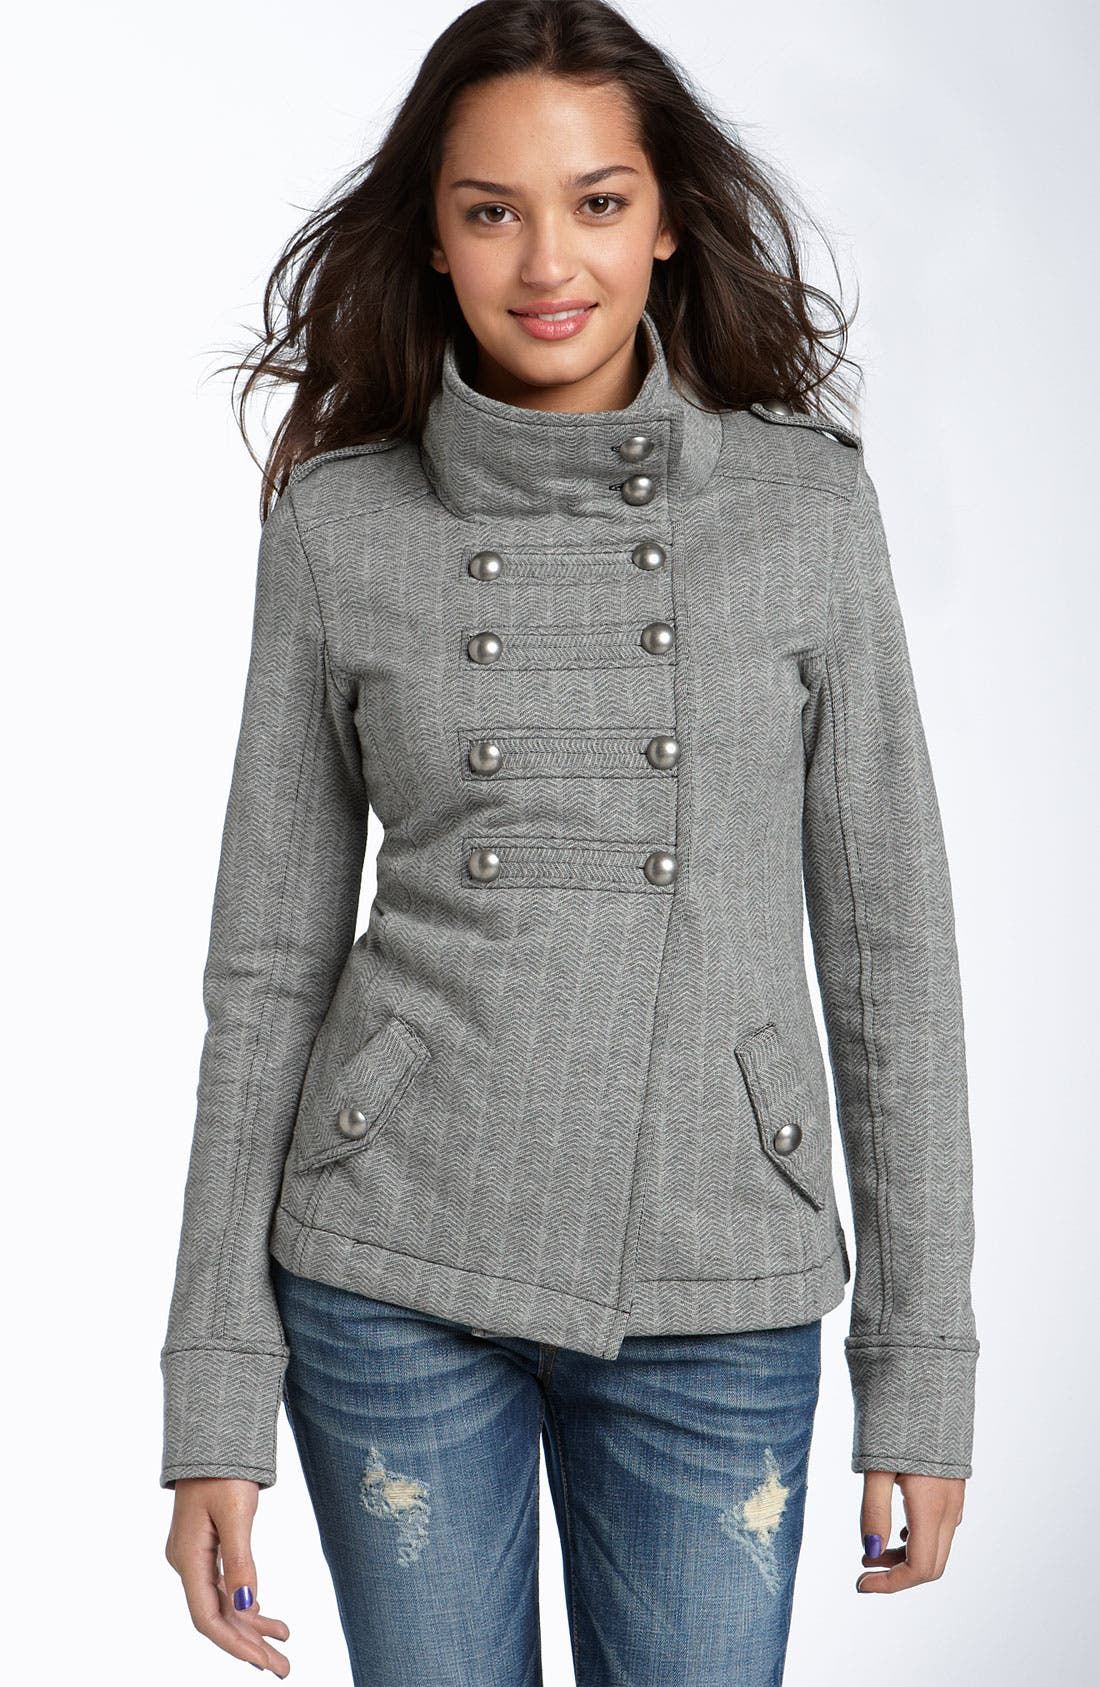 Rubbish Military Knit Jacket,                         Main,                         color, Heather